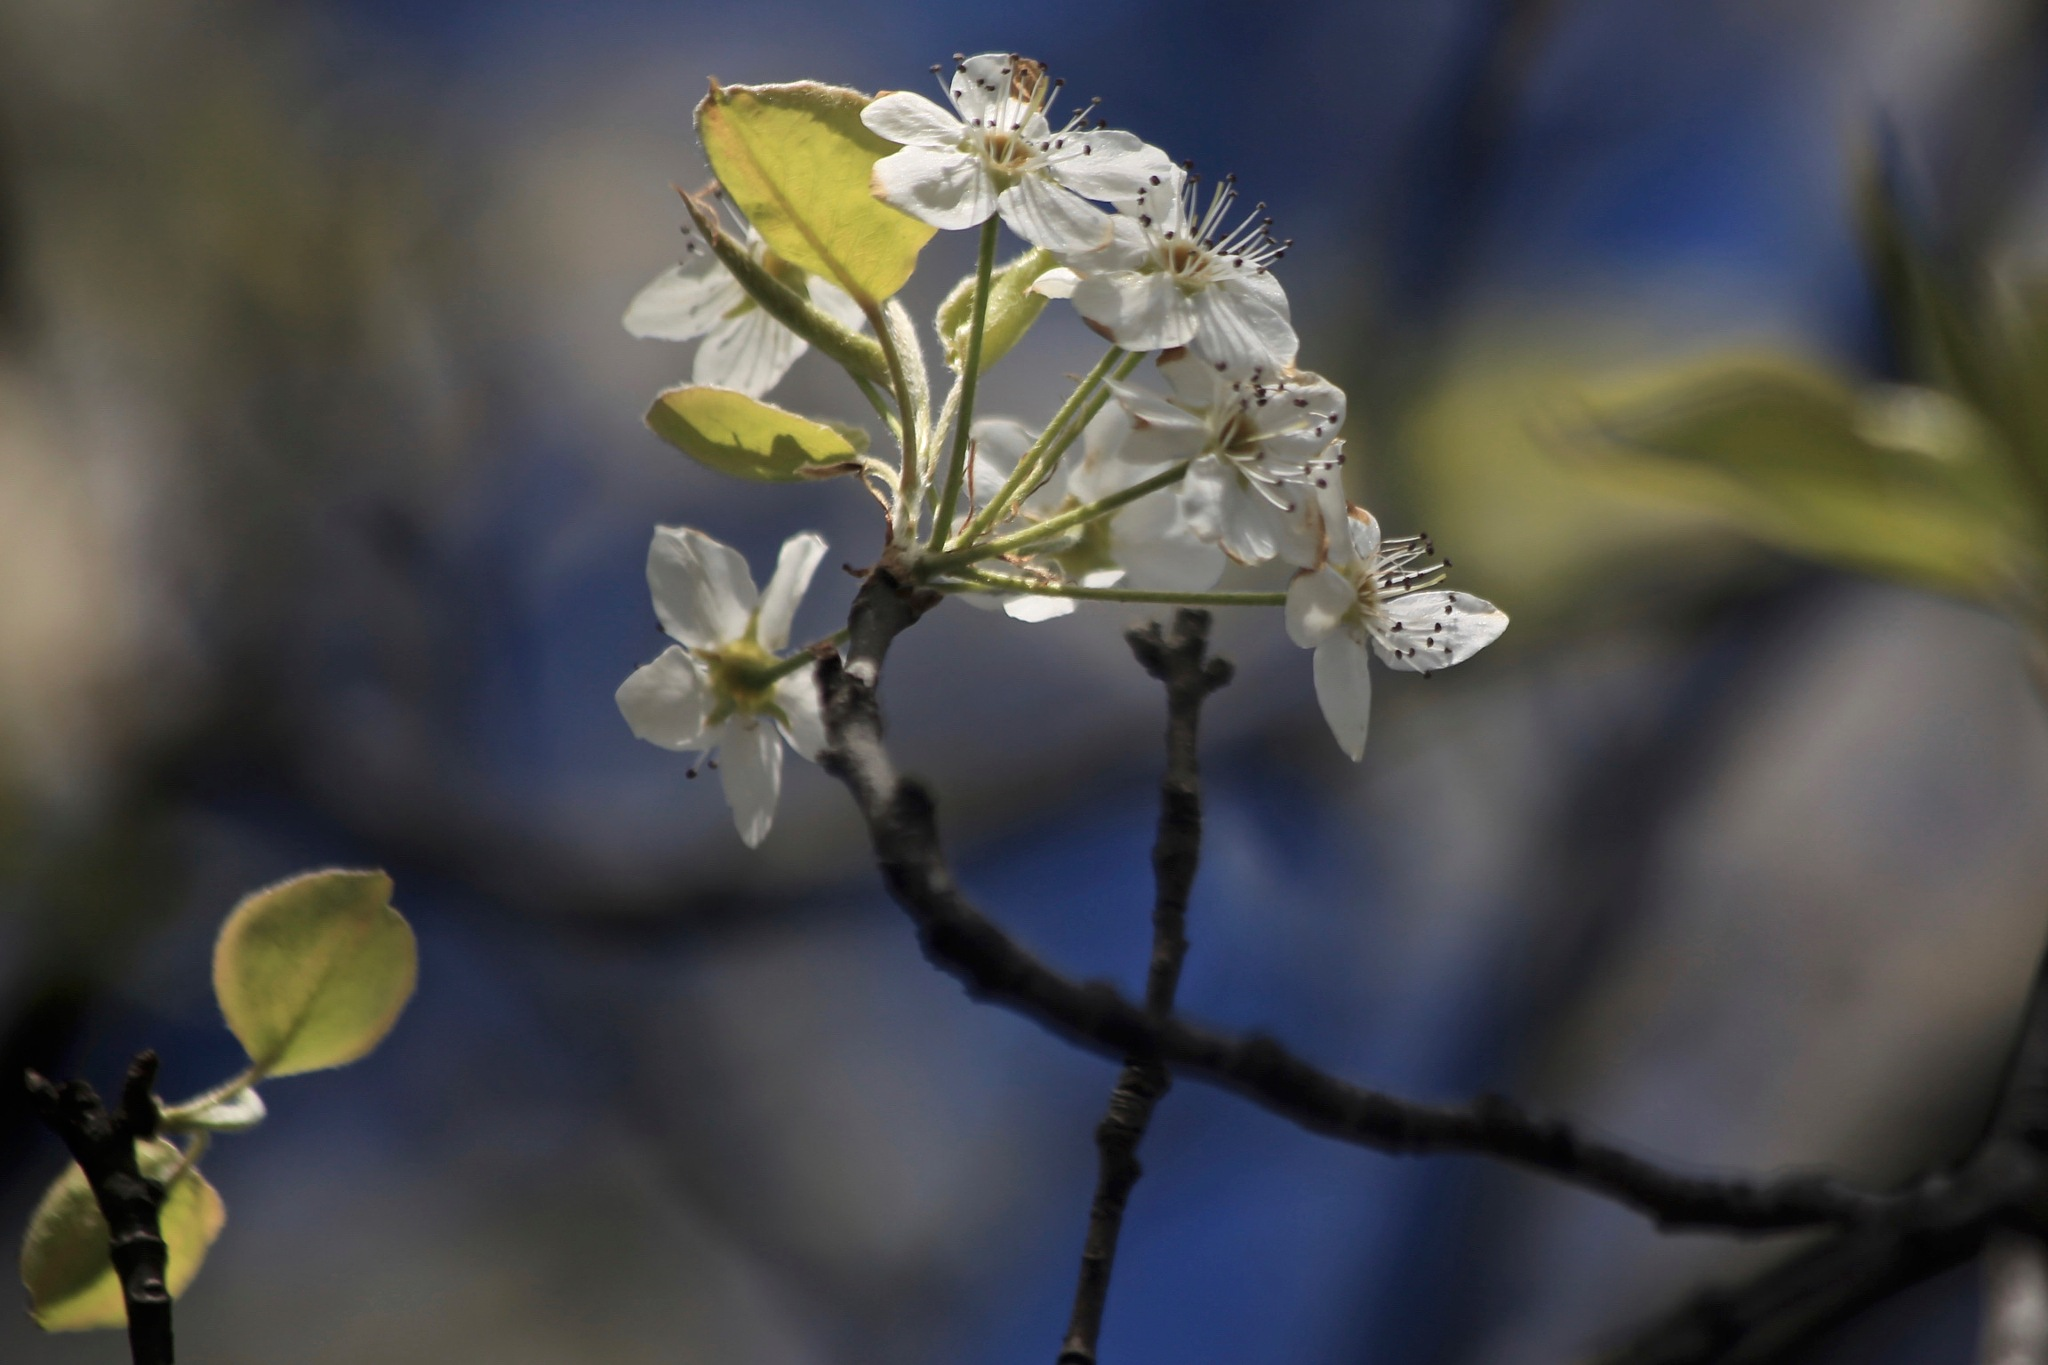 A Glorious Flowering by Patryce Haltiwanger Phillips